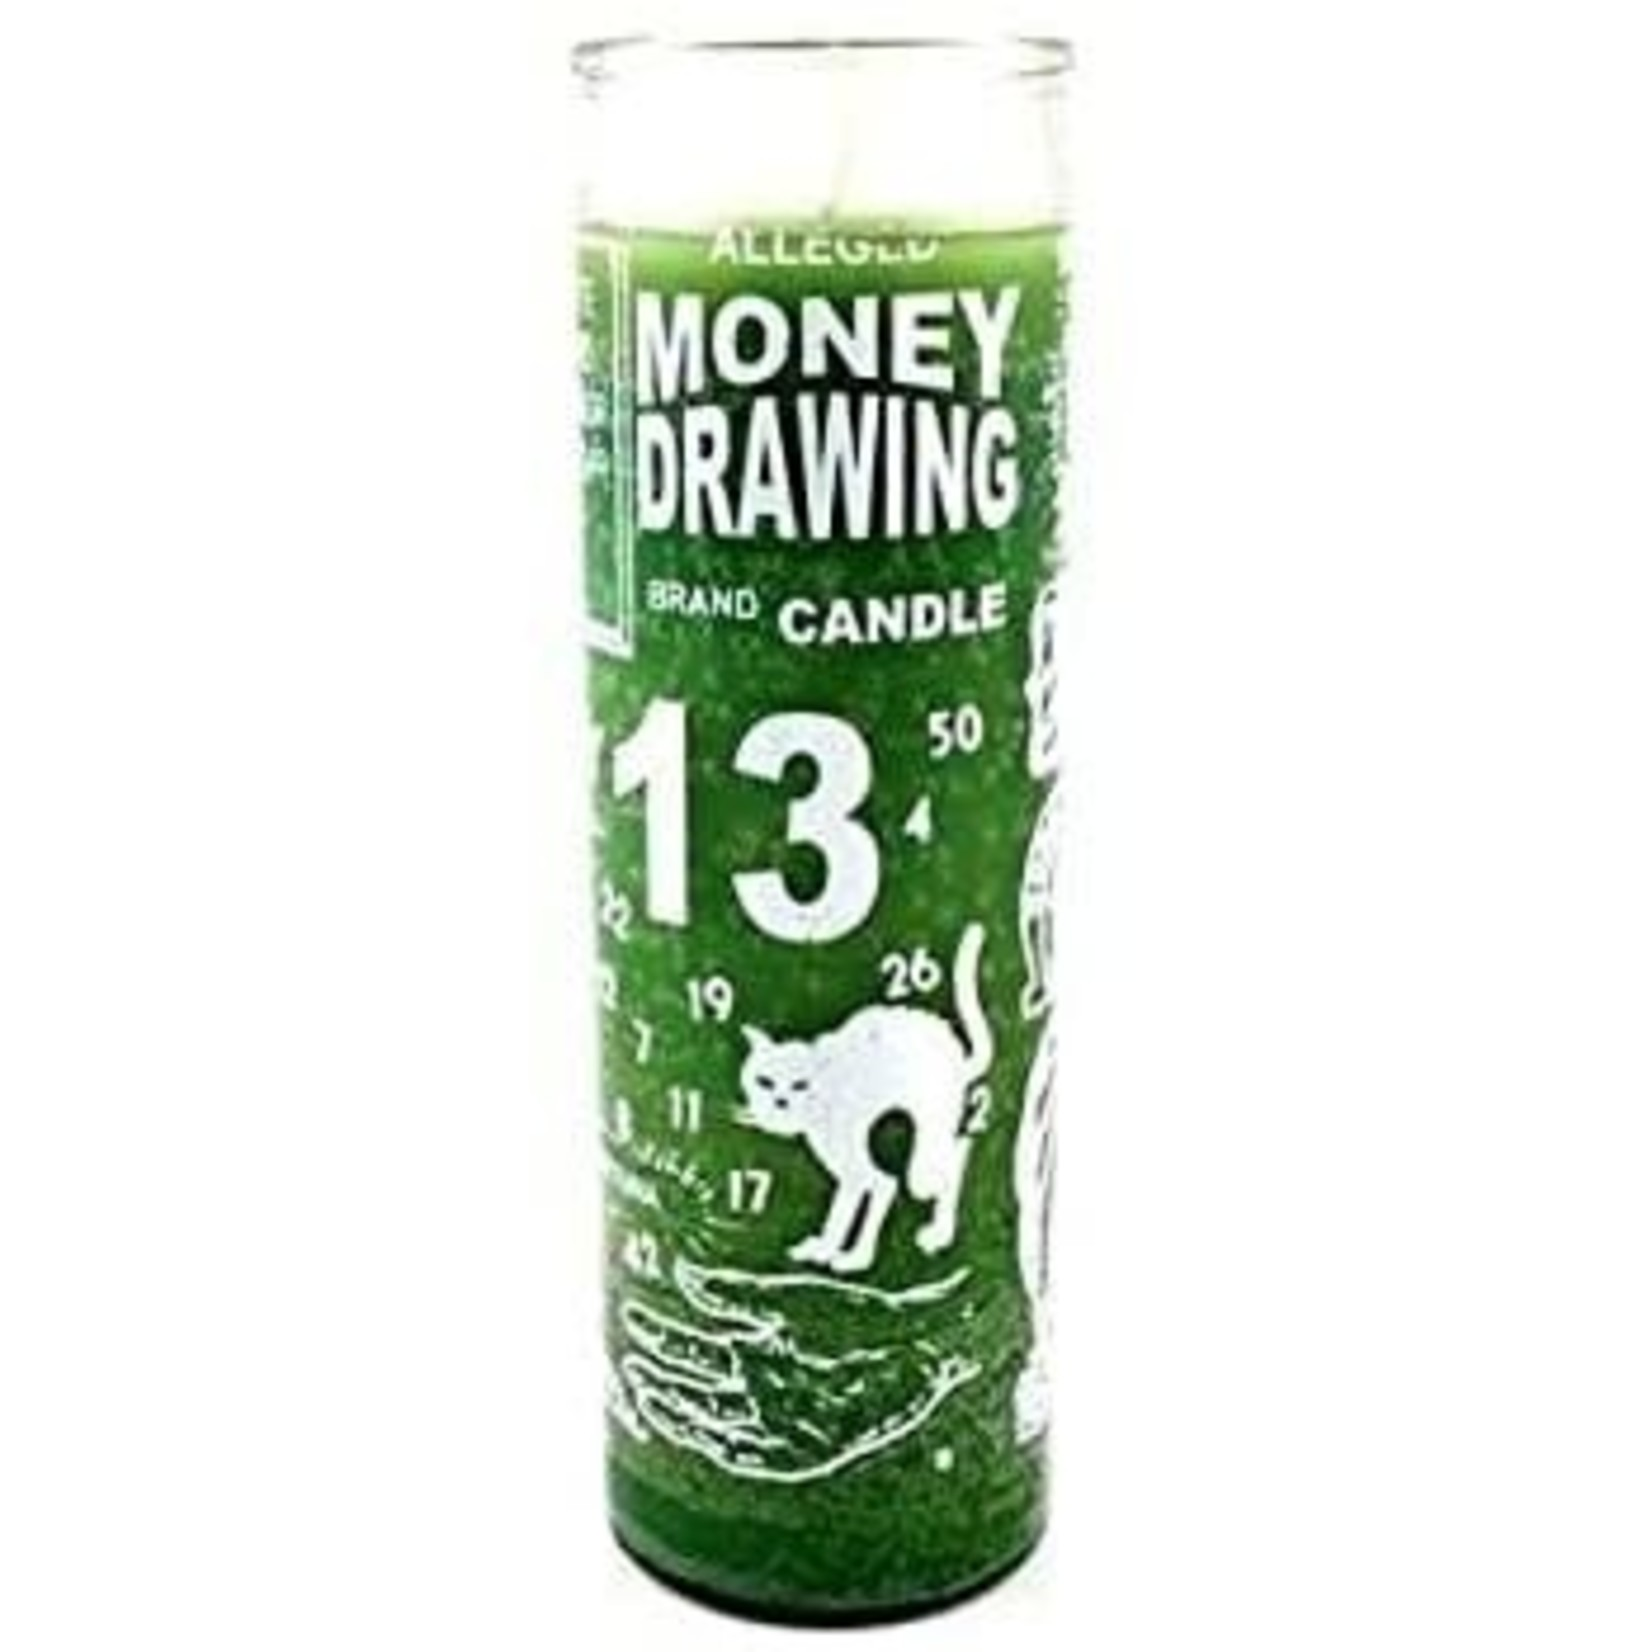 Money Drawing 7 Day Candle - Green